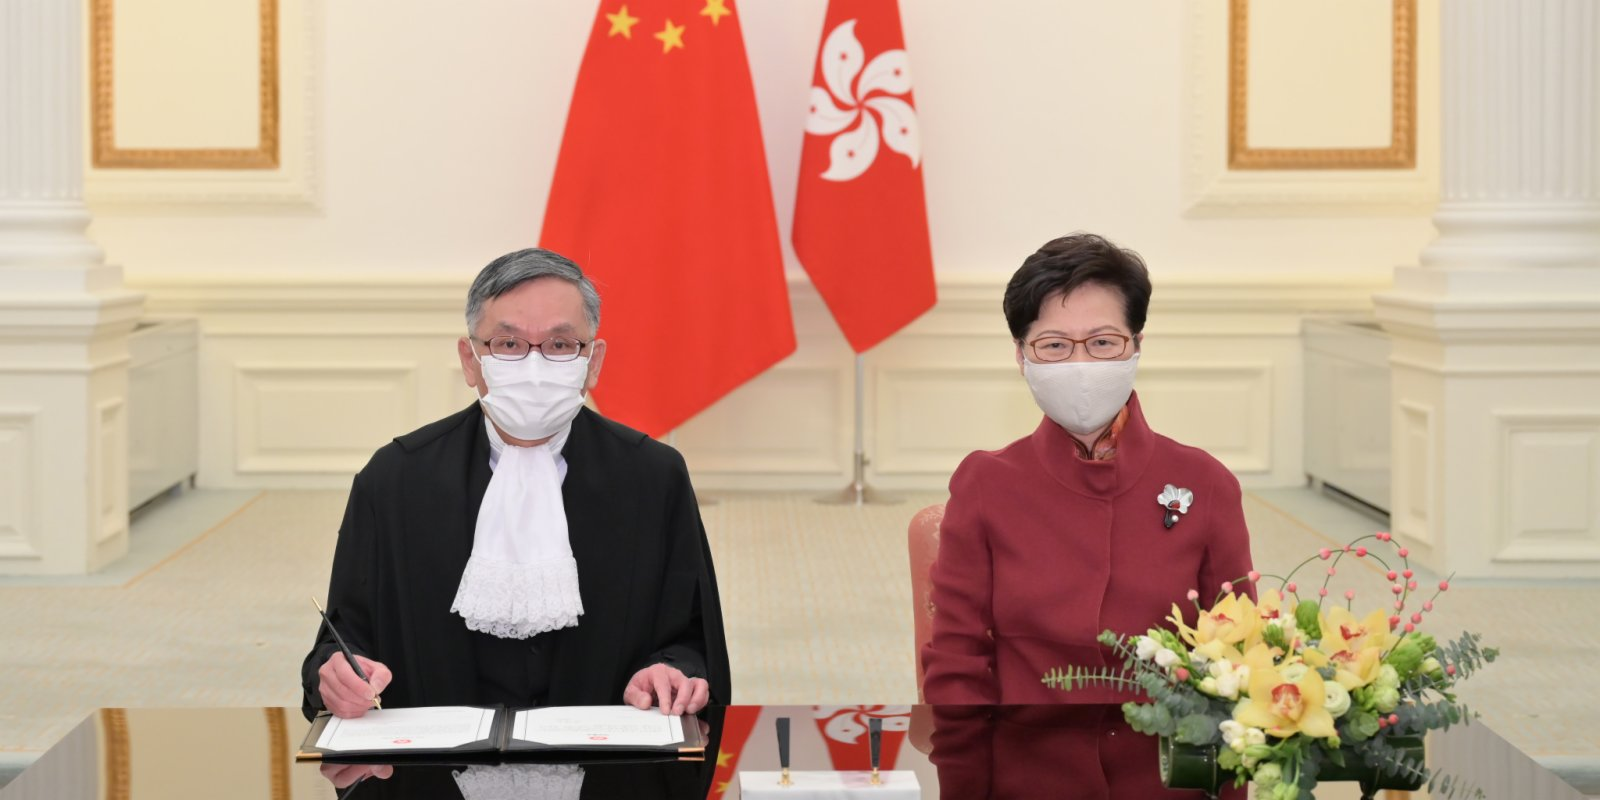 Andrew Cheung sworn in as HK's Chief Justice